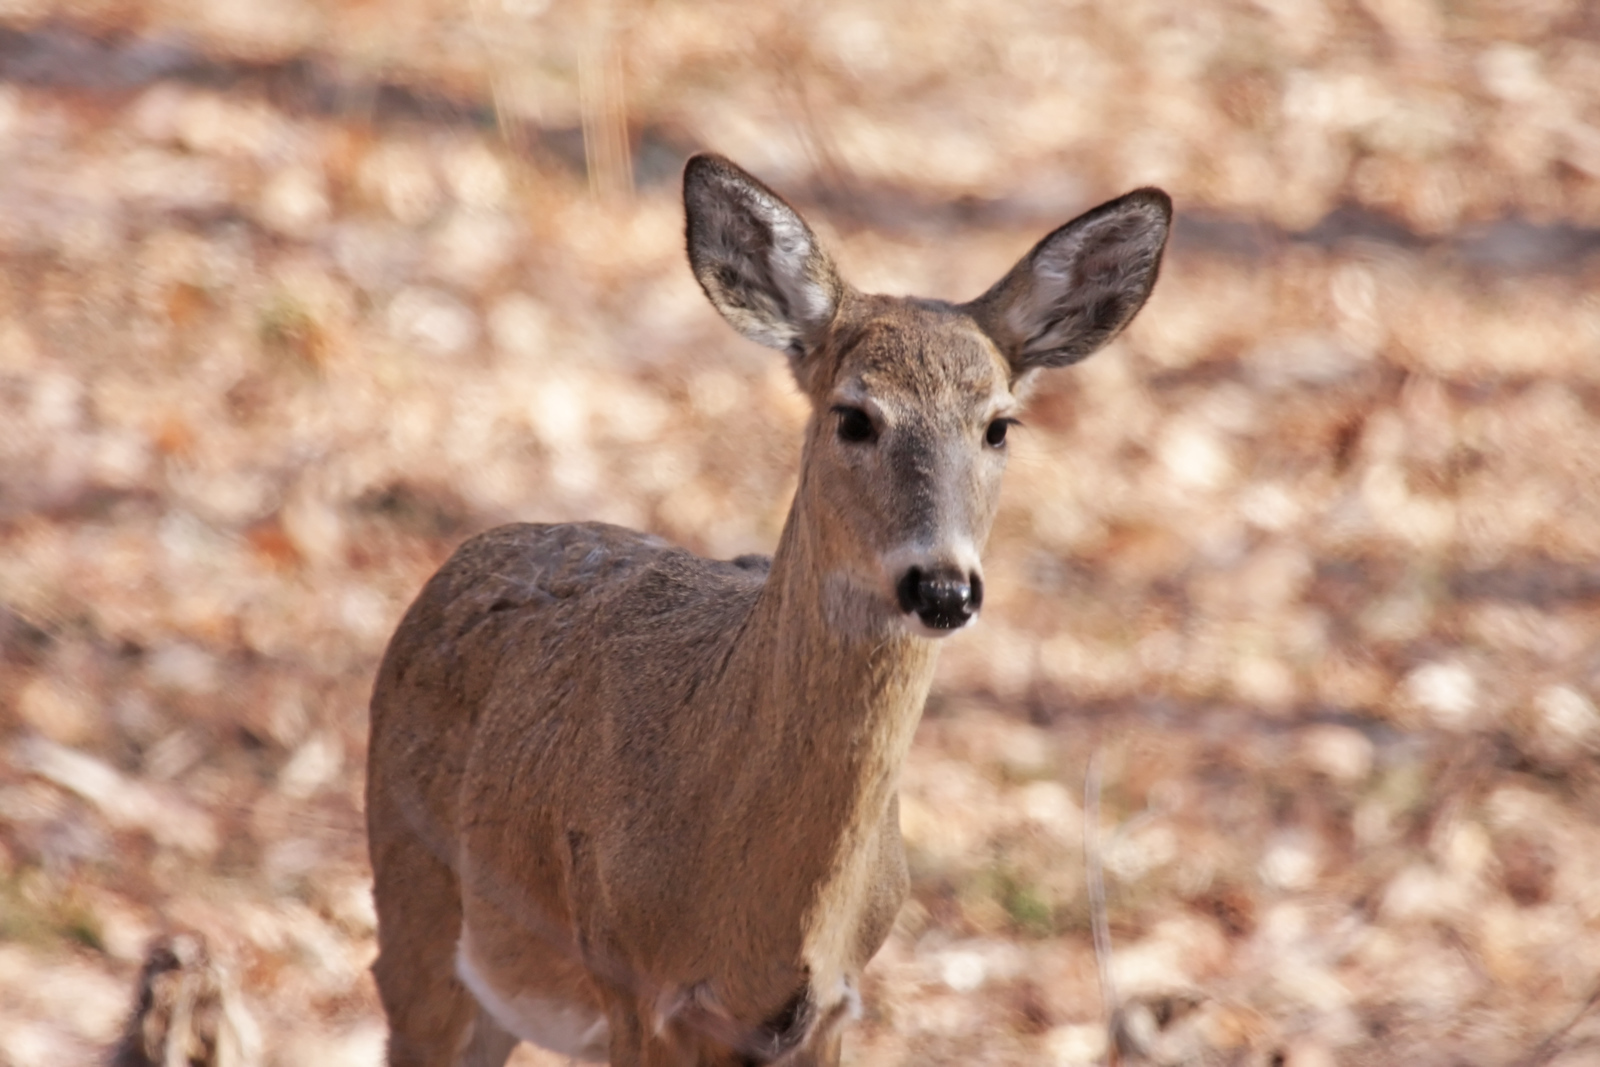 A whitetail deer standing in the woods during the springtime